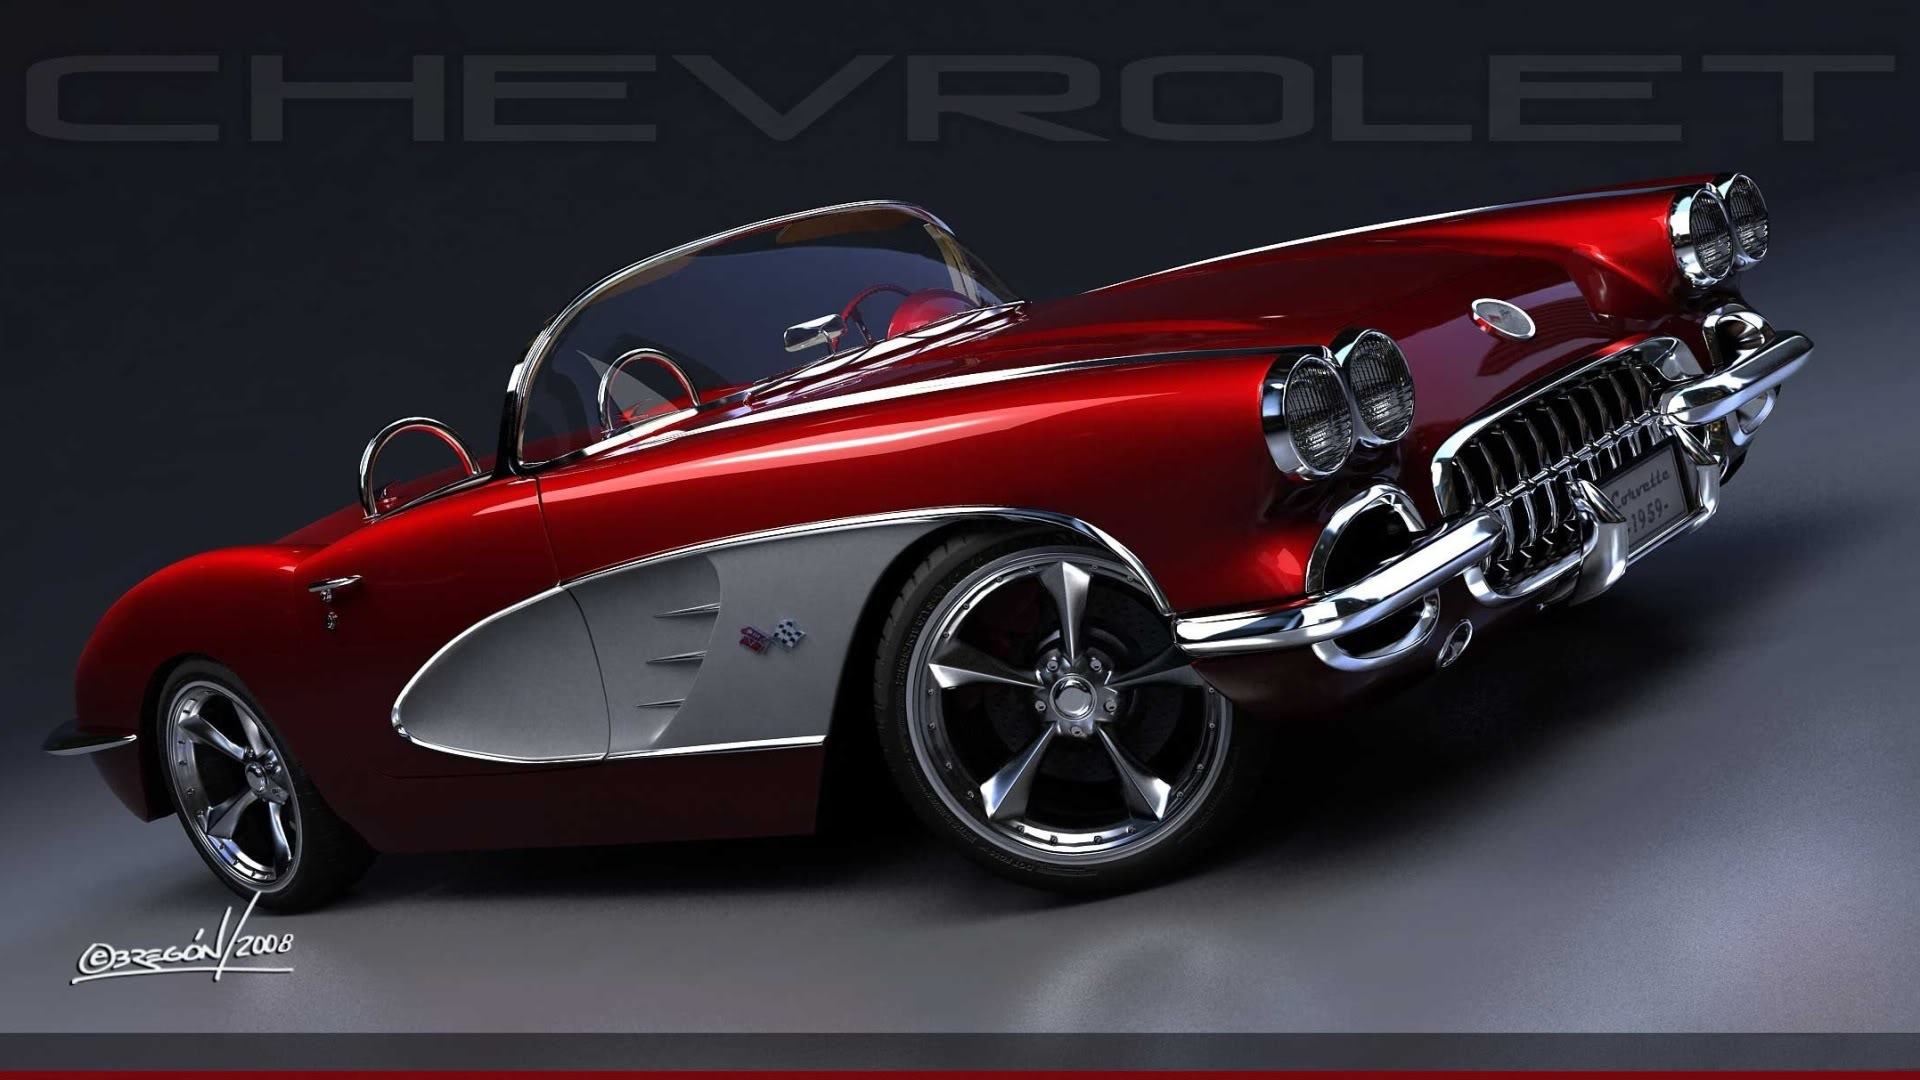 Motorcycle Tire Sizes >> 1959 Corvette Roadster Resto-Mod | Flickr - Photo Sharing!